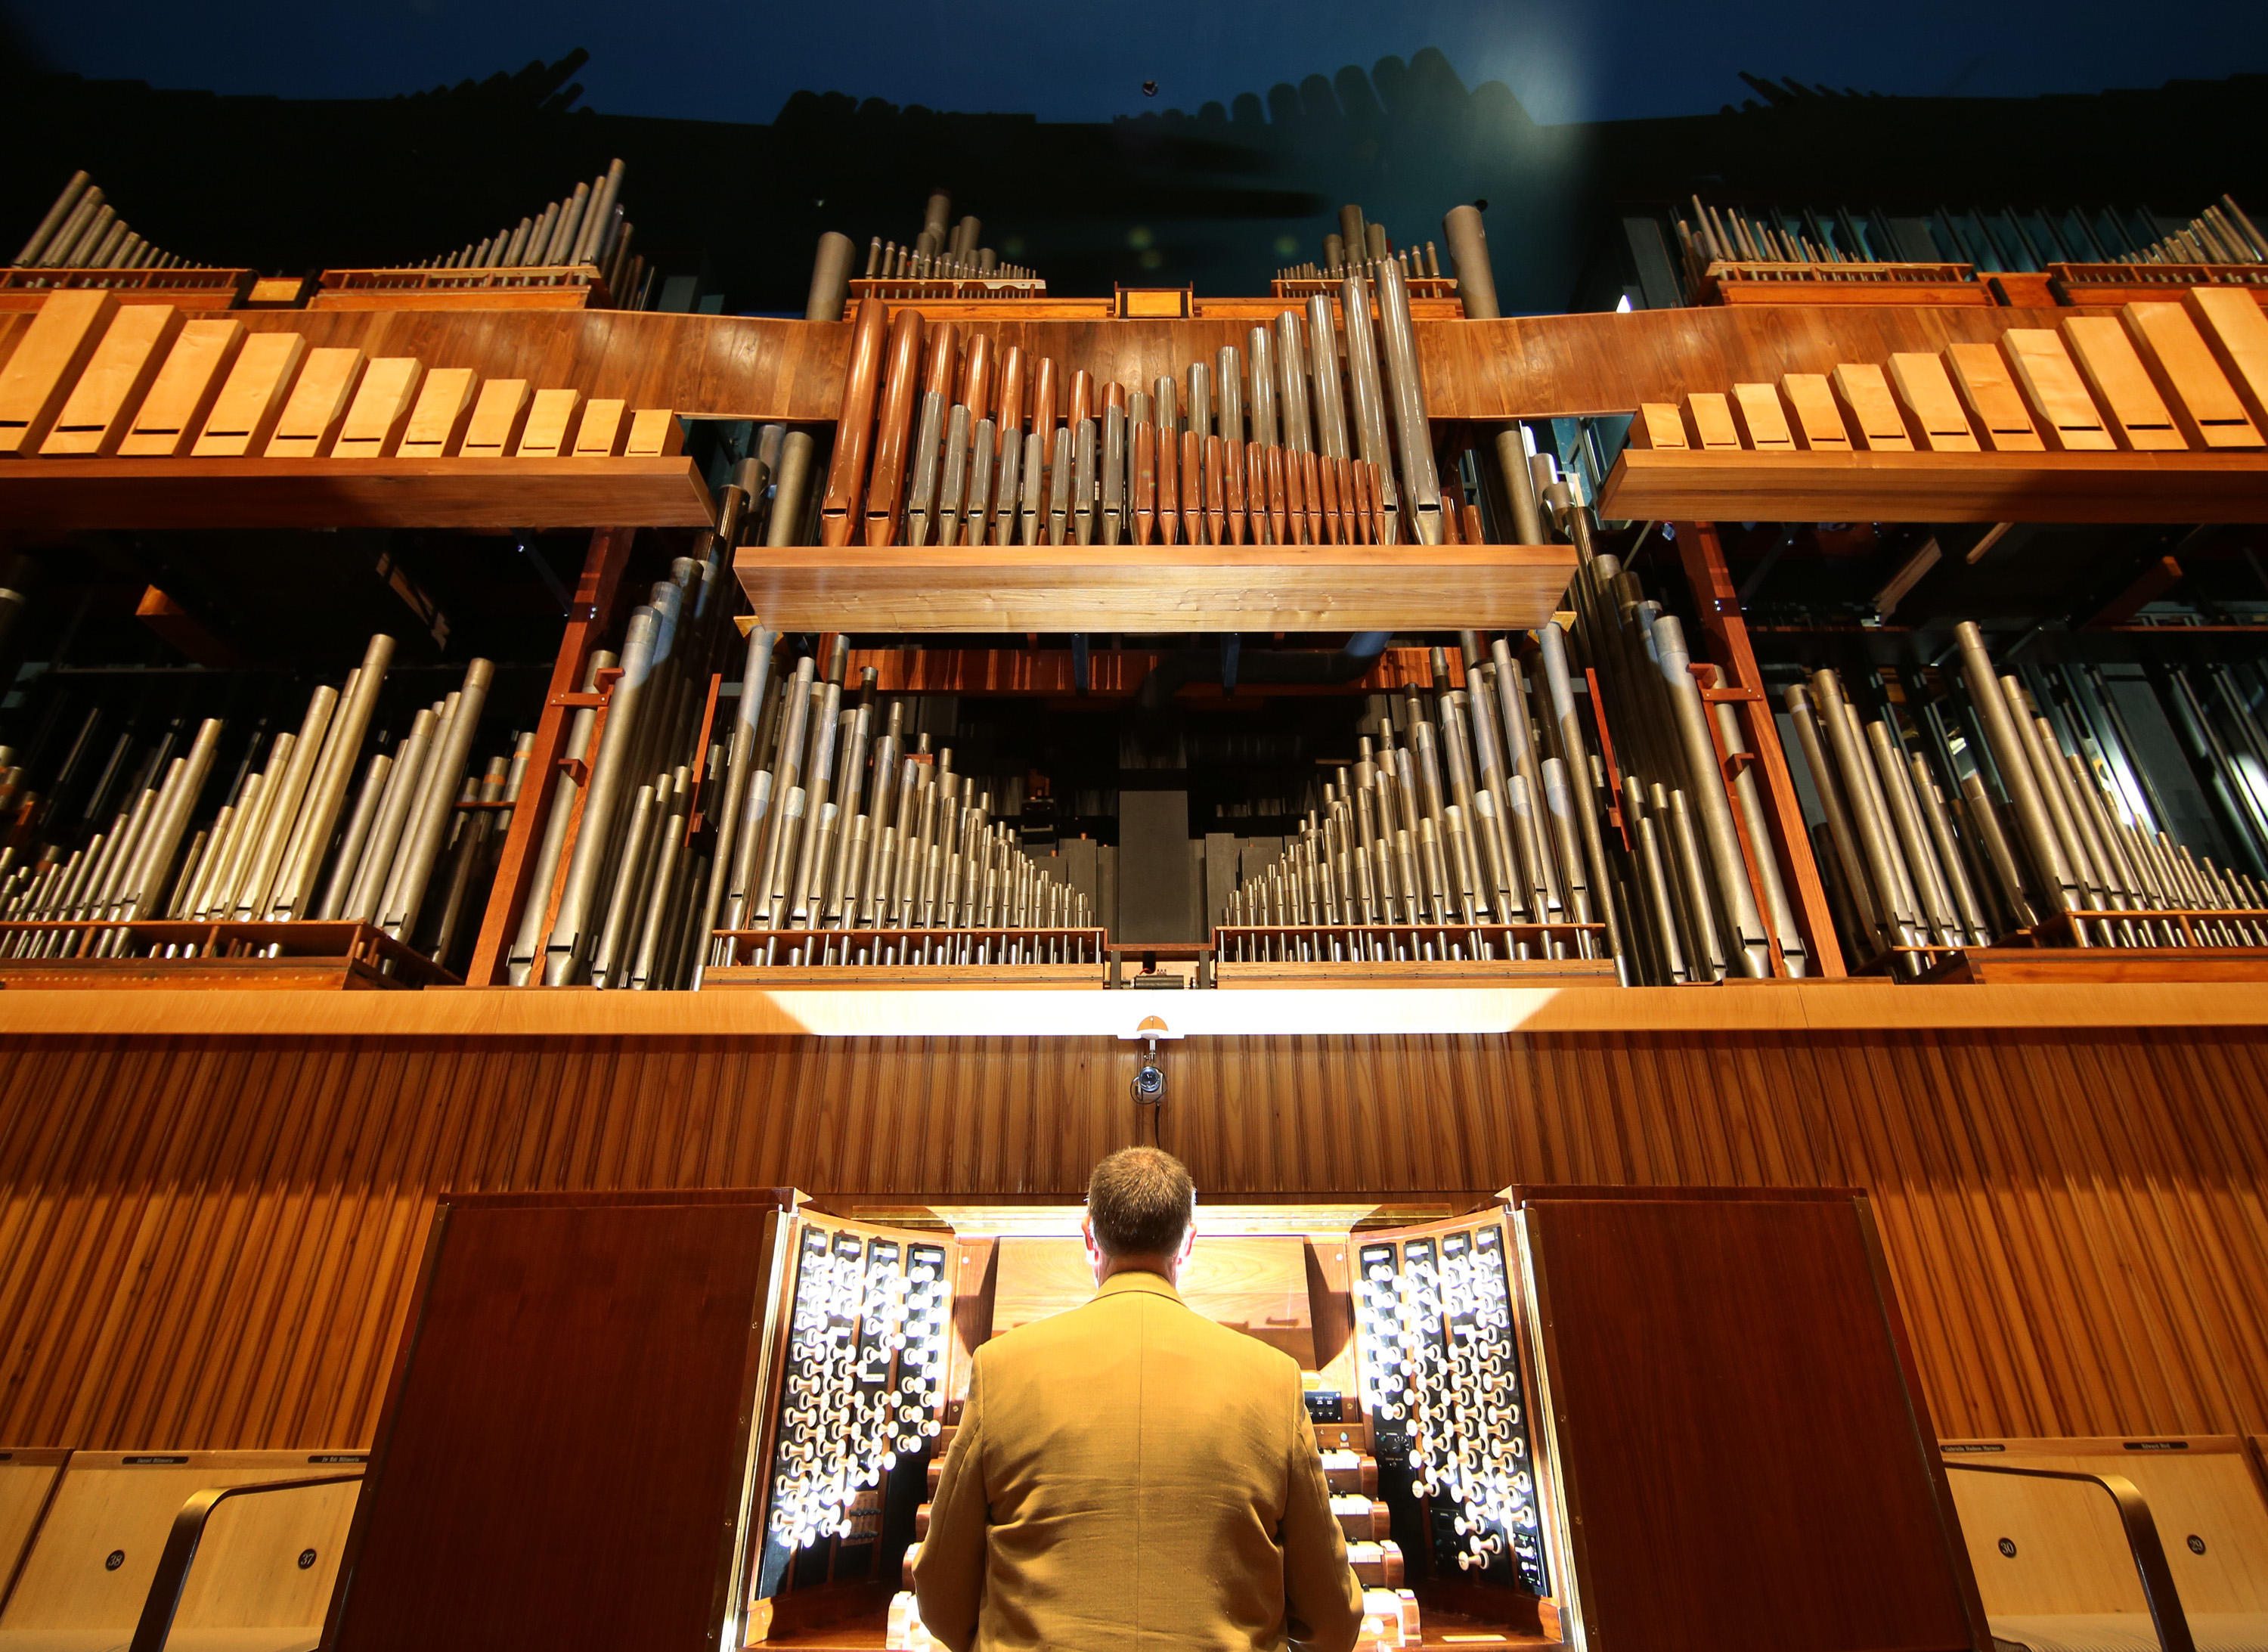 Royal Festival Hall Organ